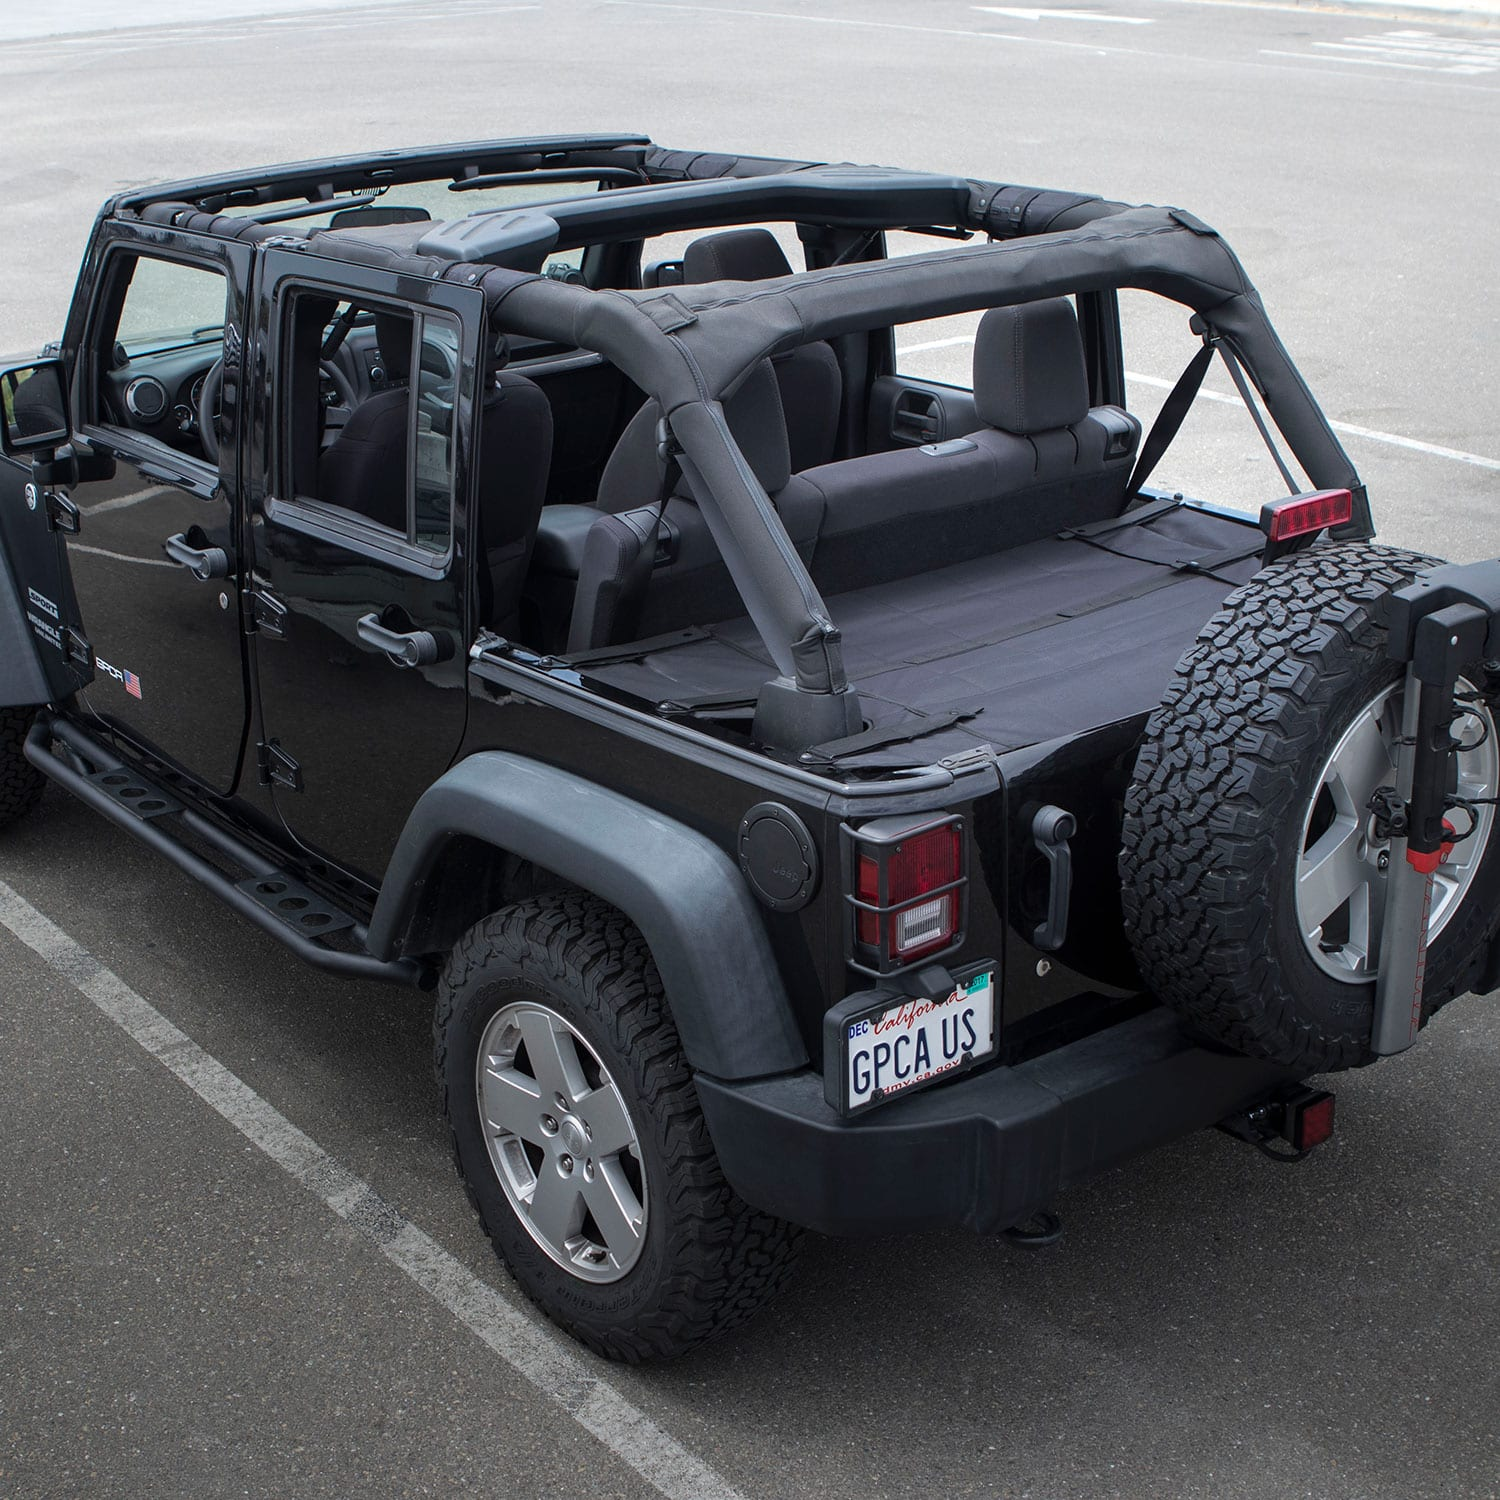 Gpca Jeep Wrangler Cargo Cover Pro Covers Stuff With Top On Or Topless